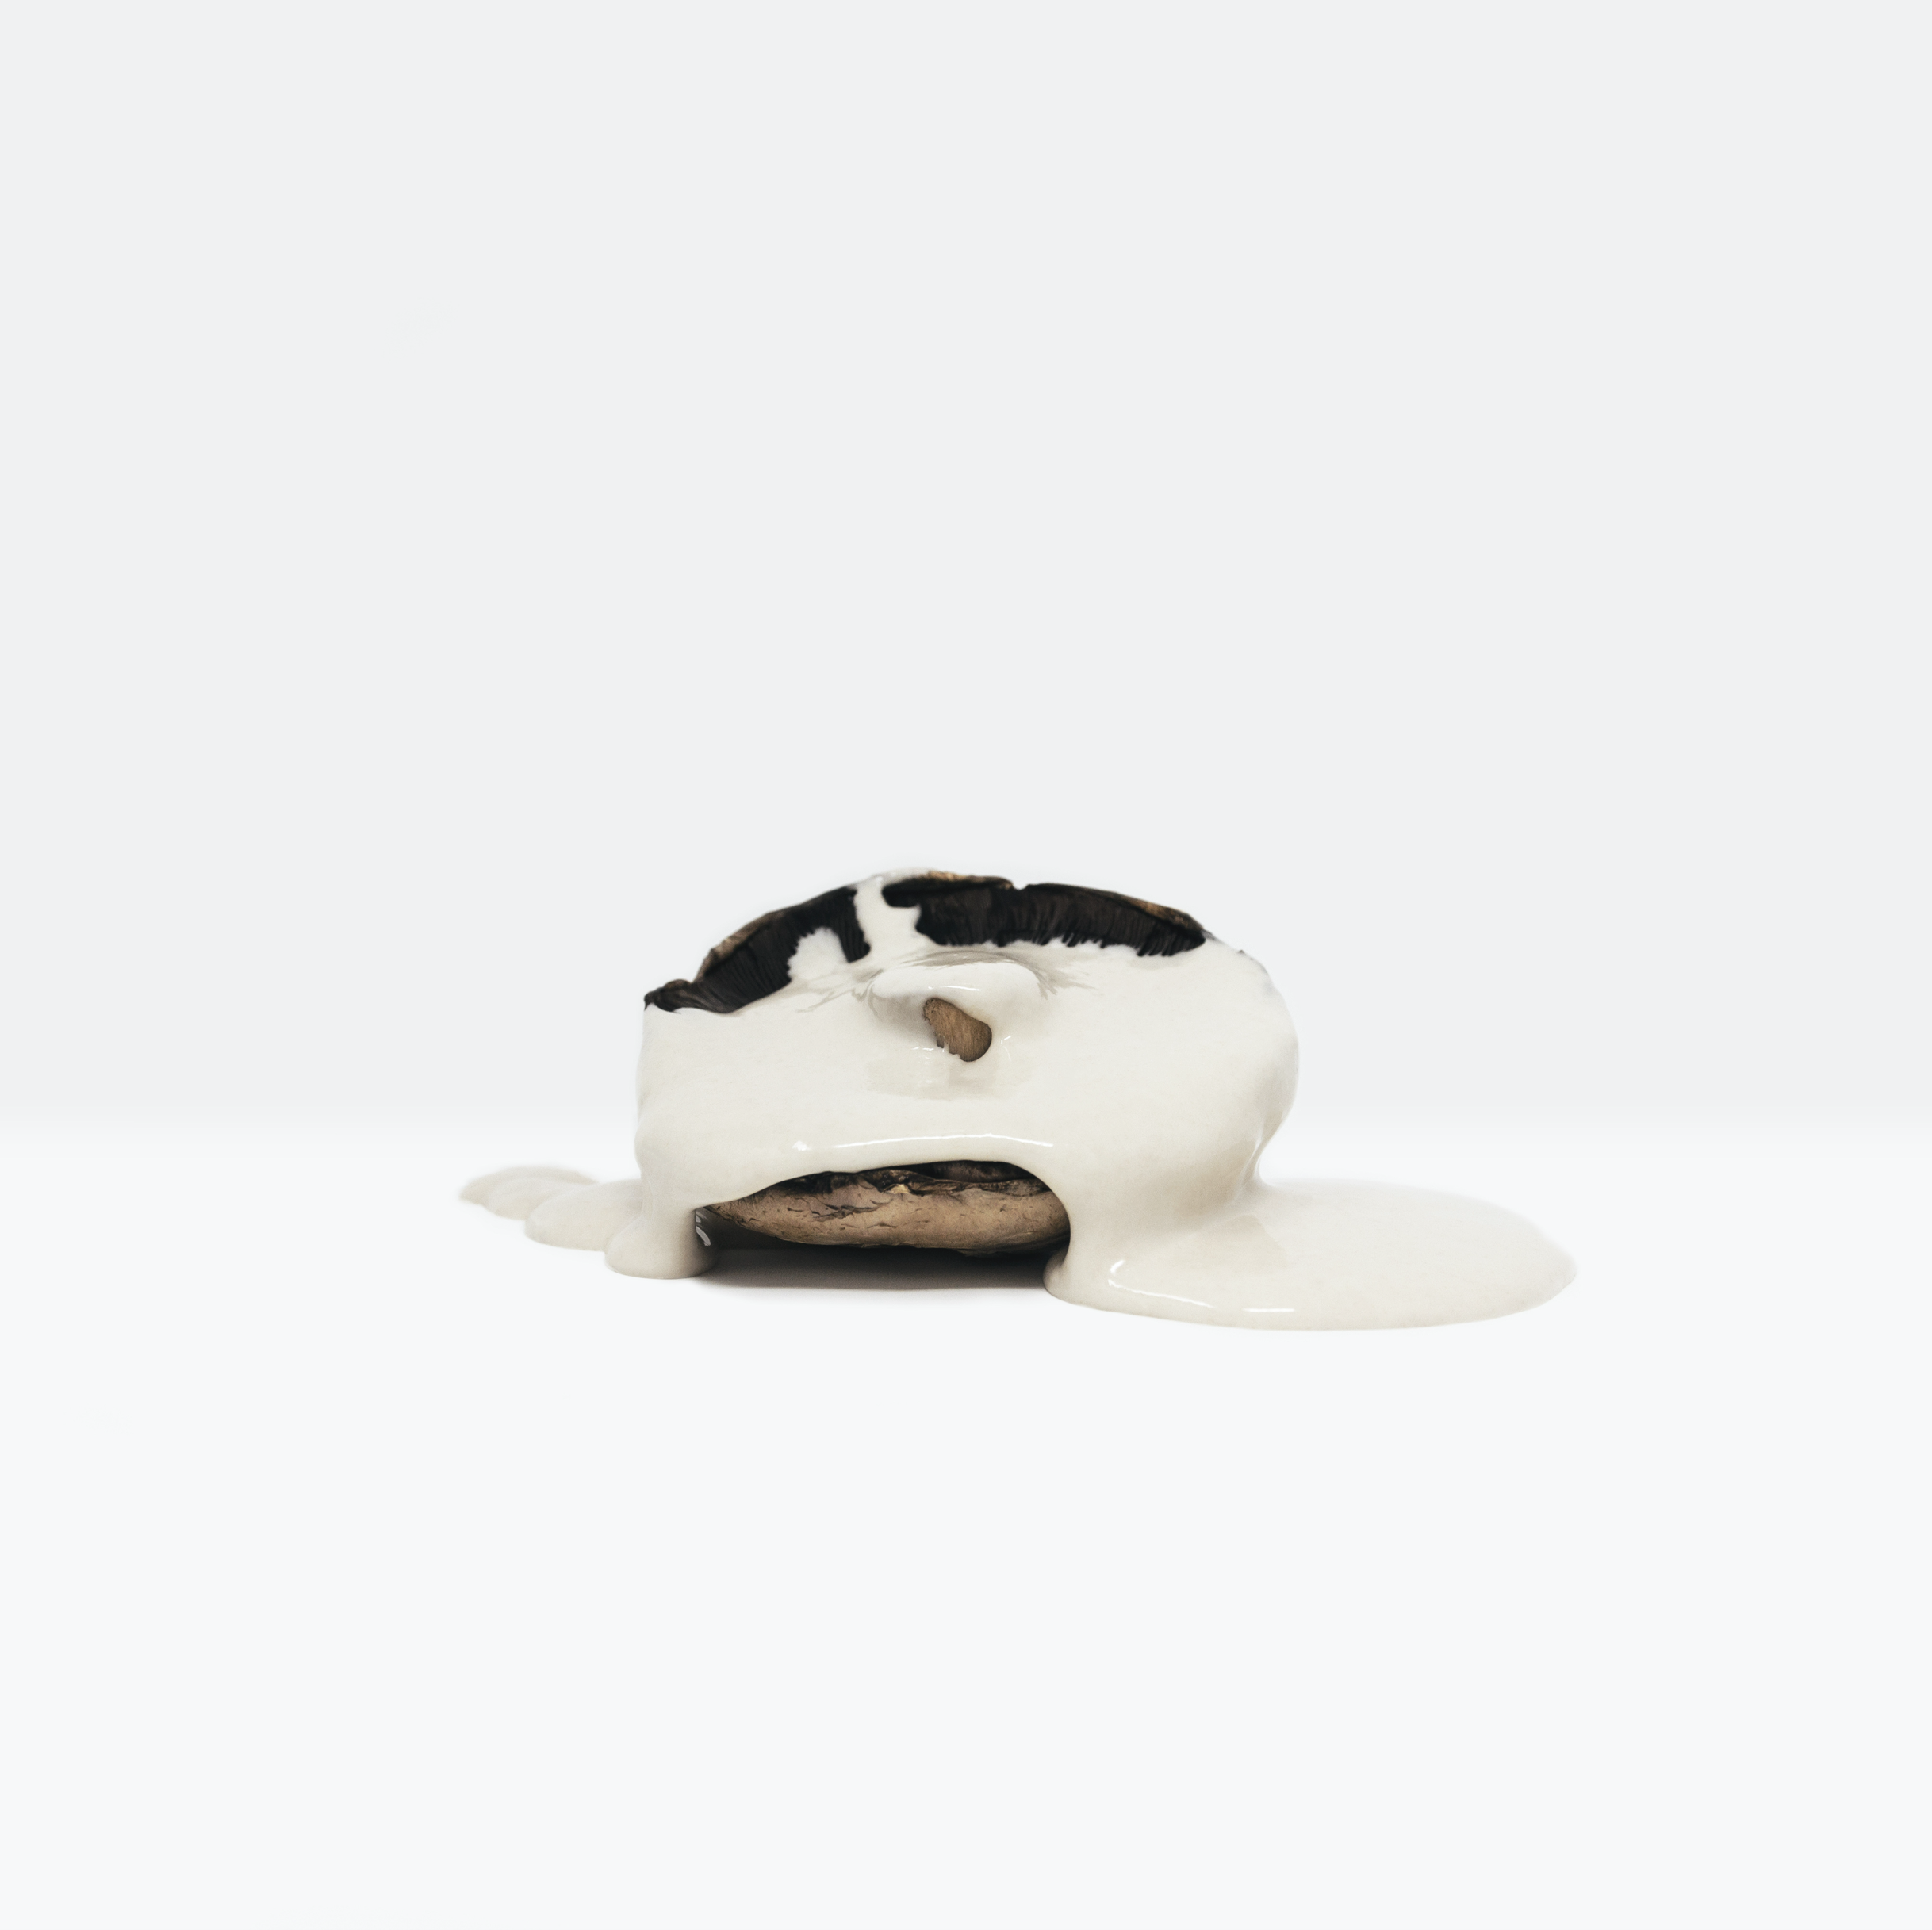 Minimalist, still life photograph of a mushroom covered in a paint-like substance highlighting the value of food, evoking the crucial reflection of the Global Food Crisis